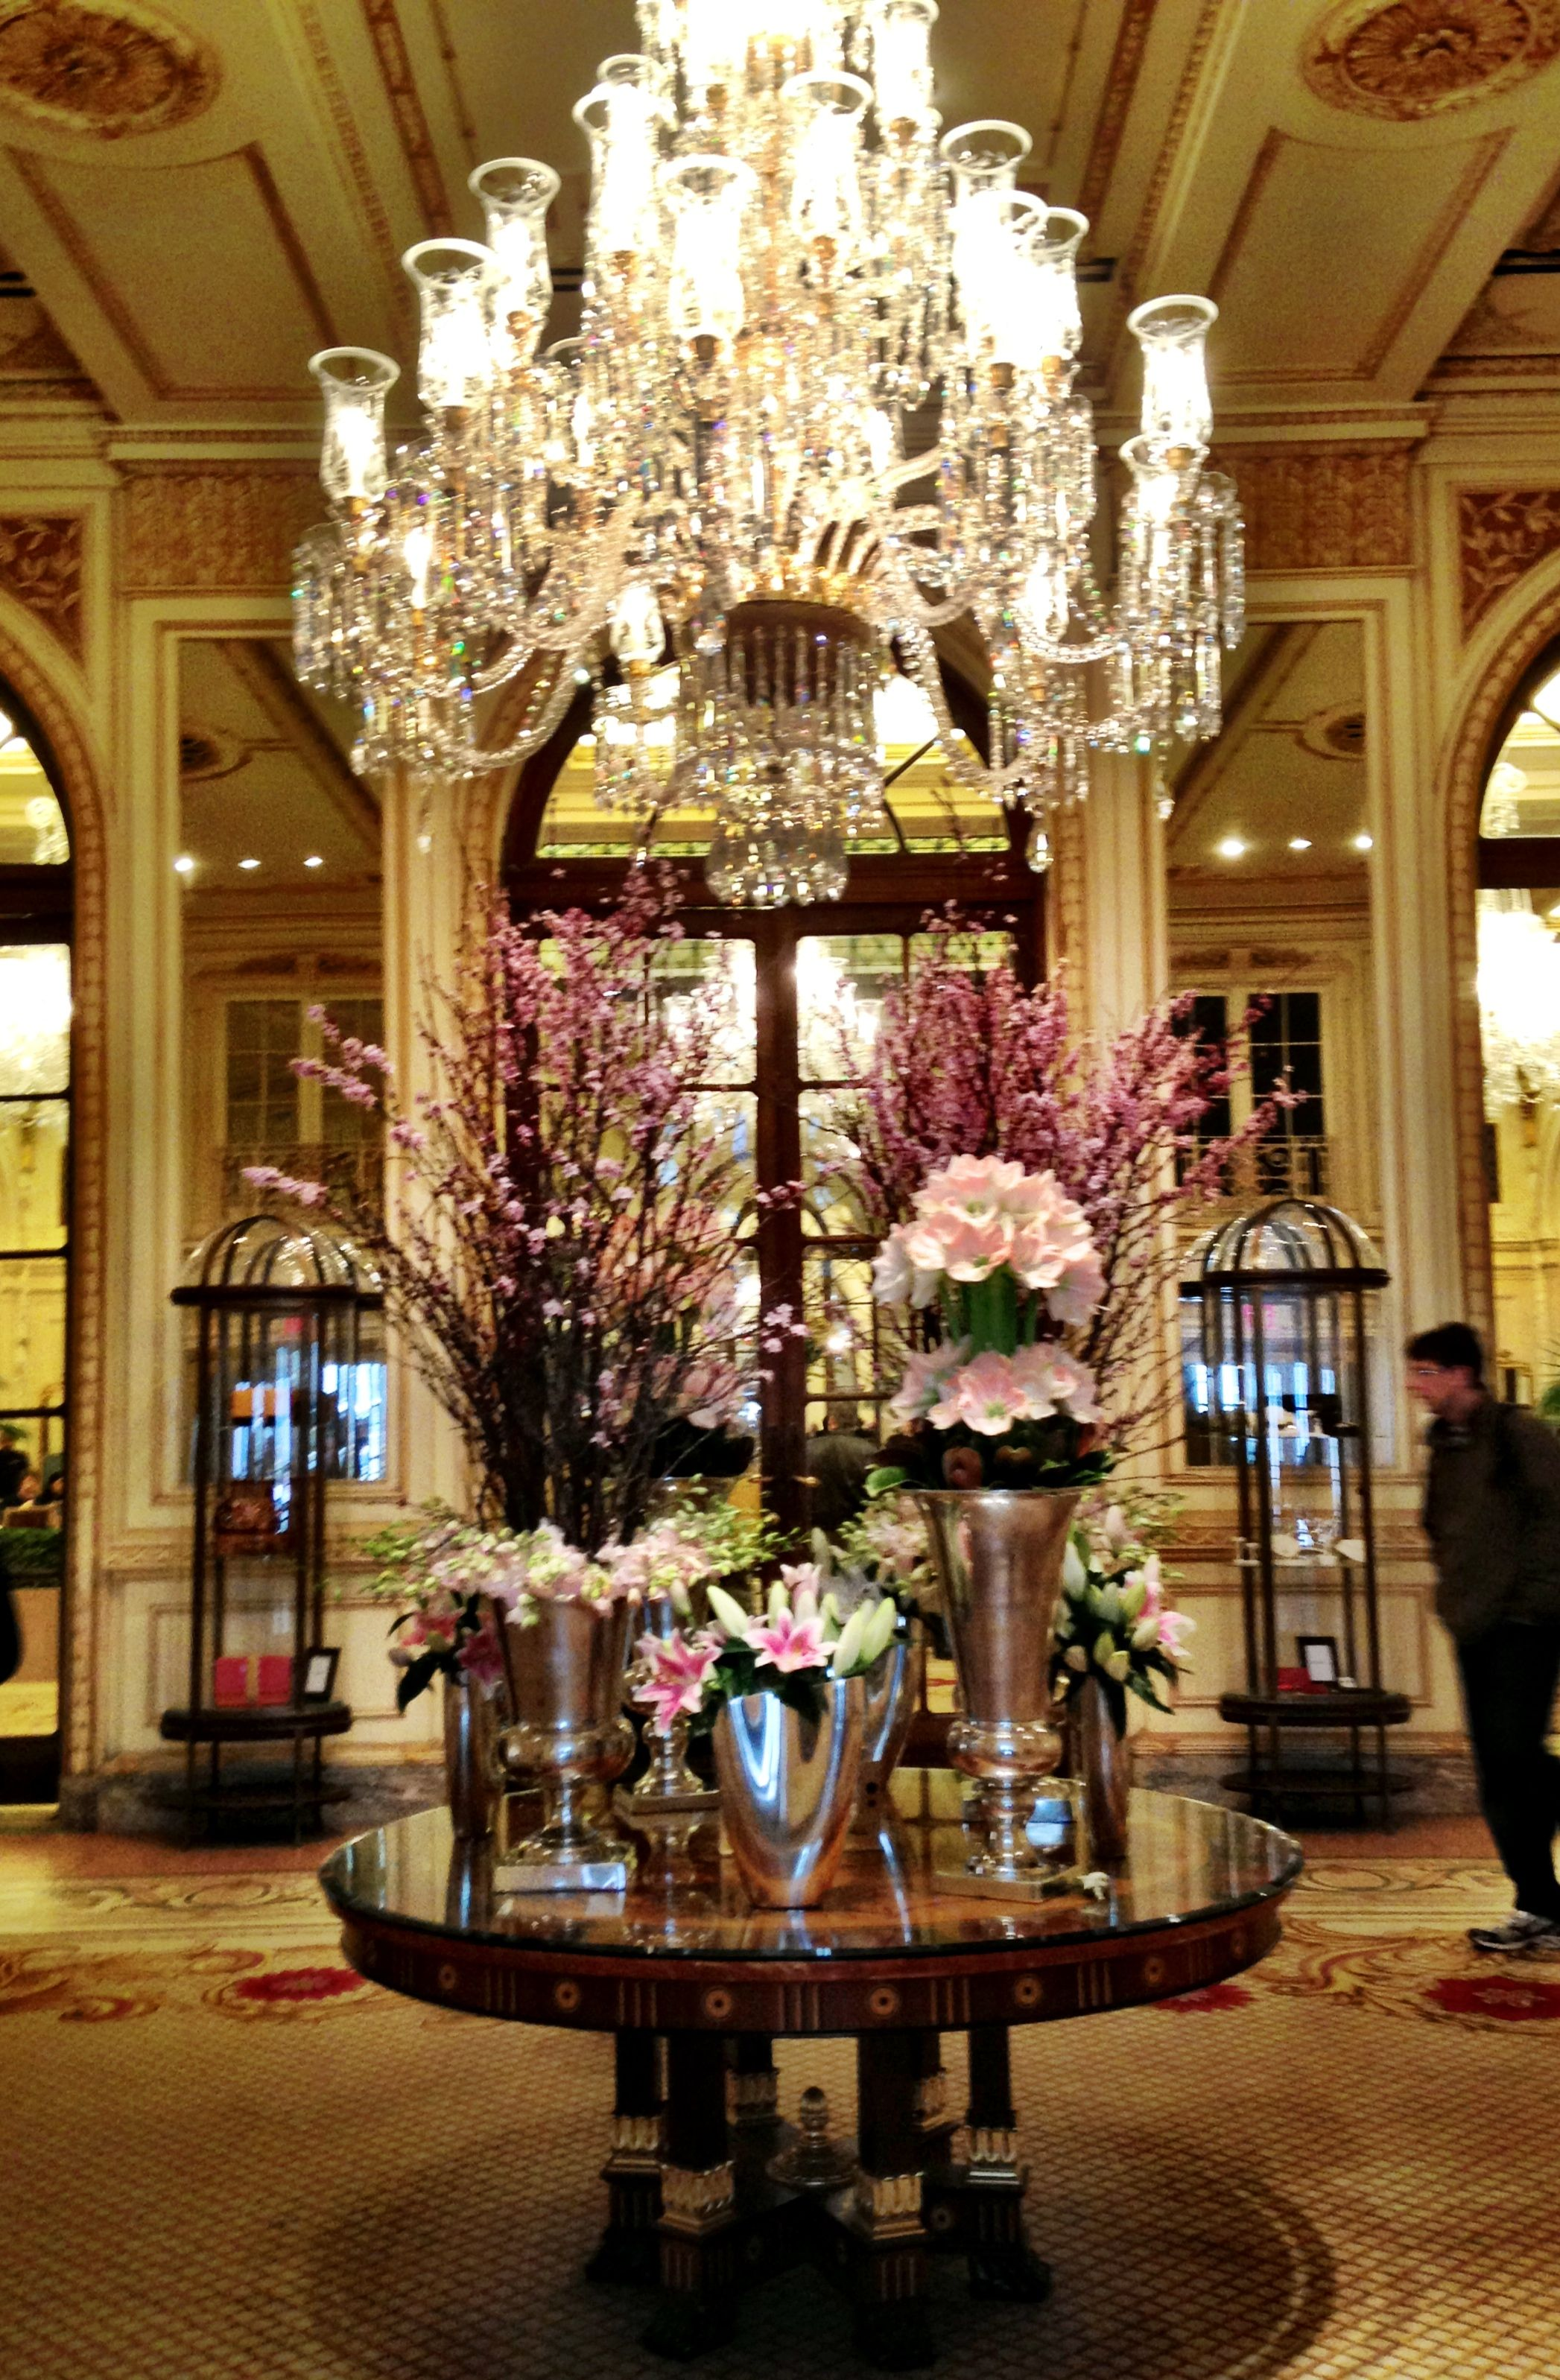 The flowers in The Plaza Hotel lobby were fresh and